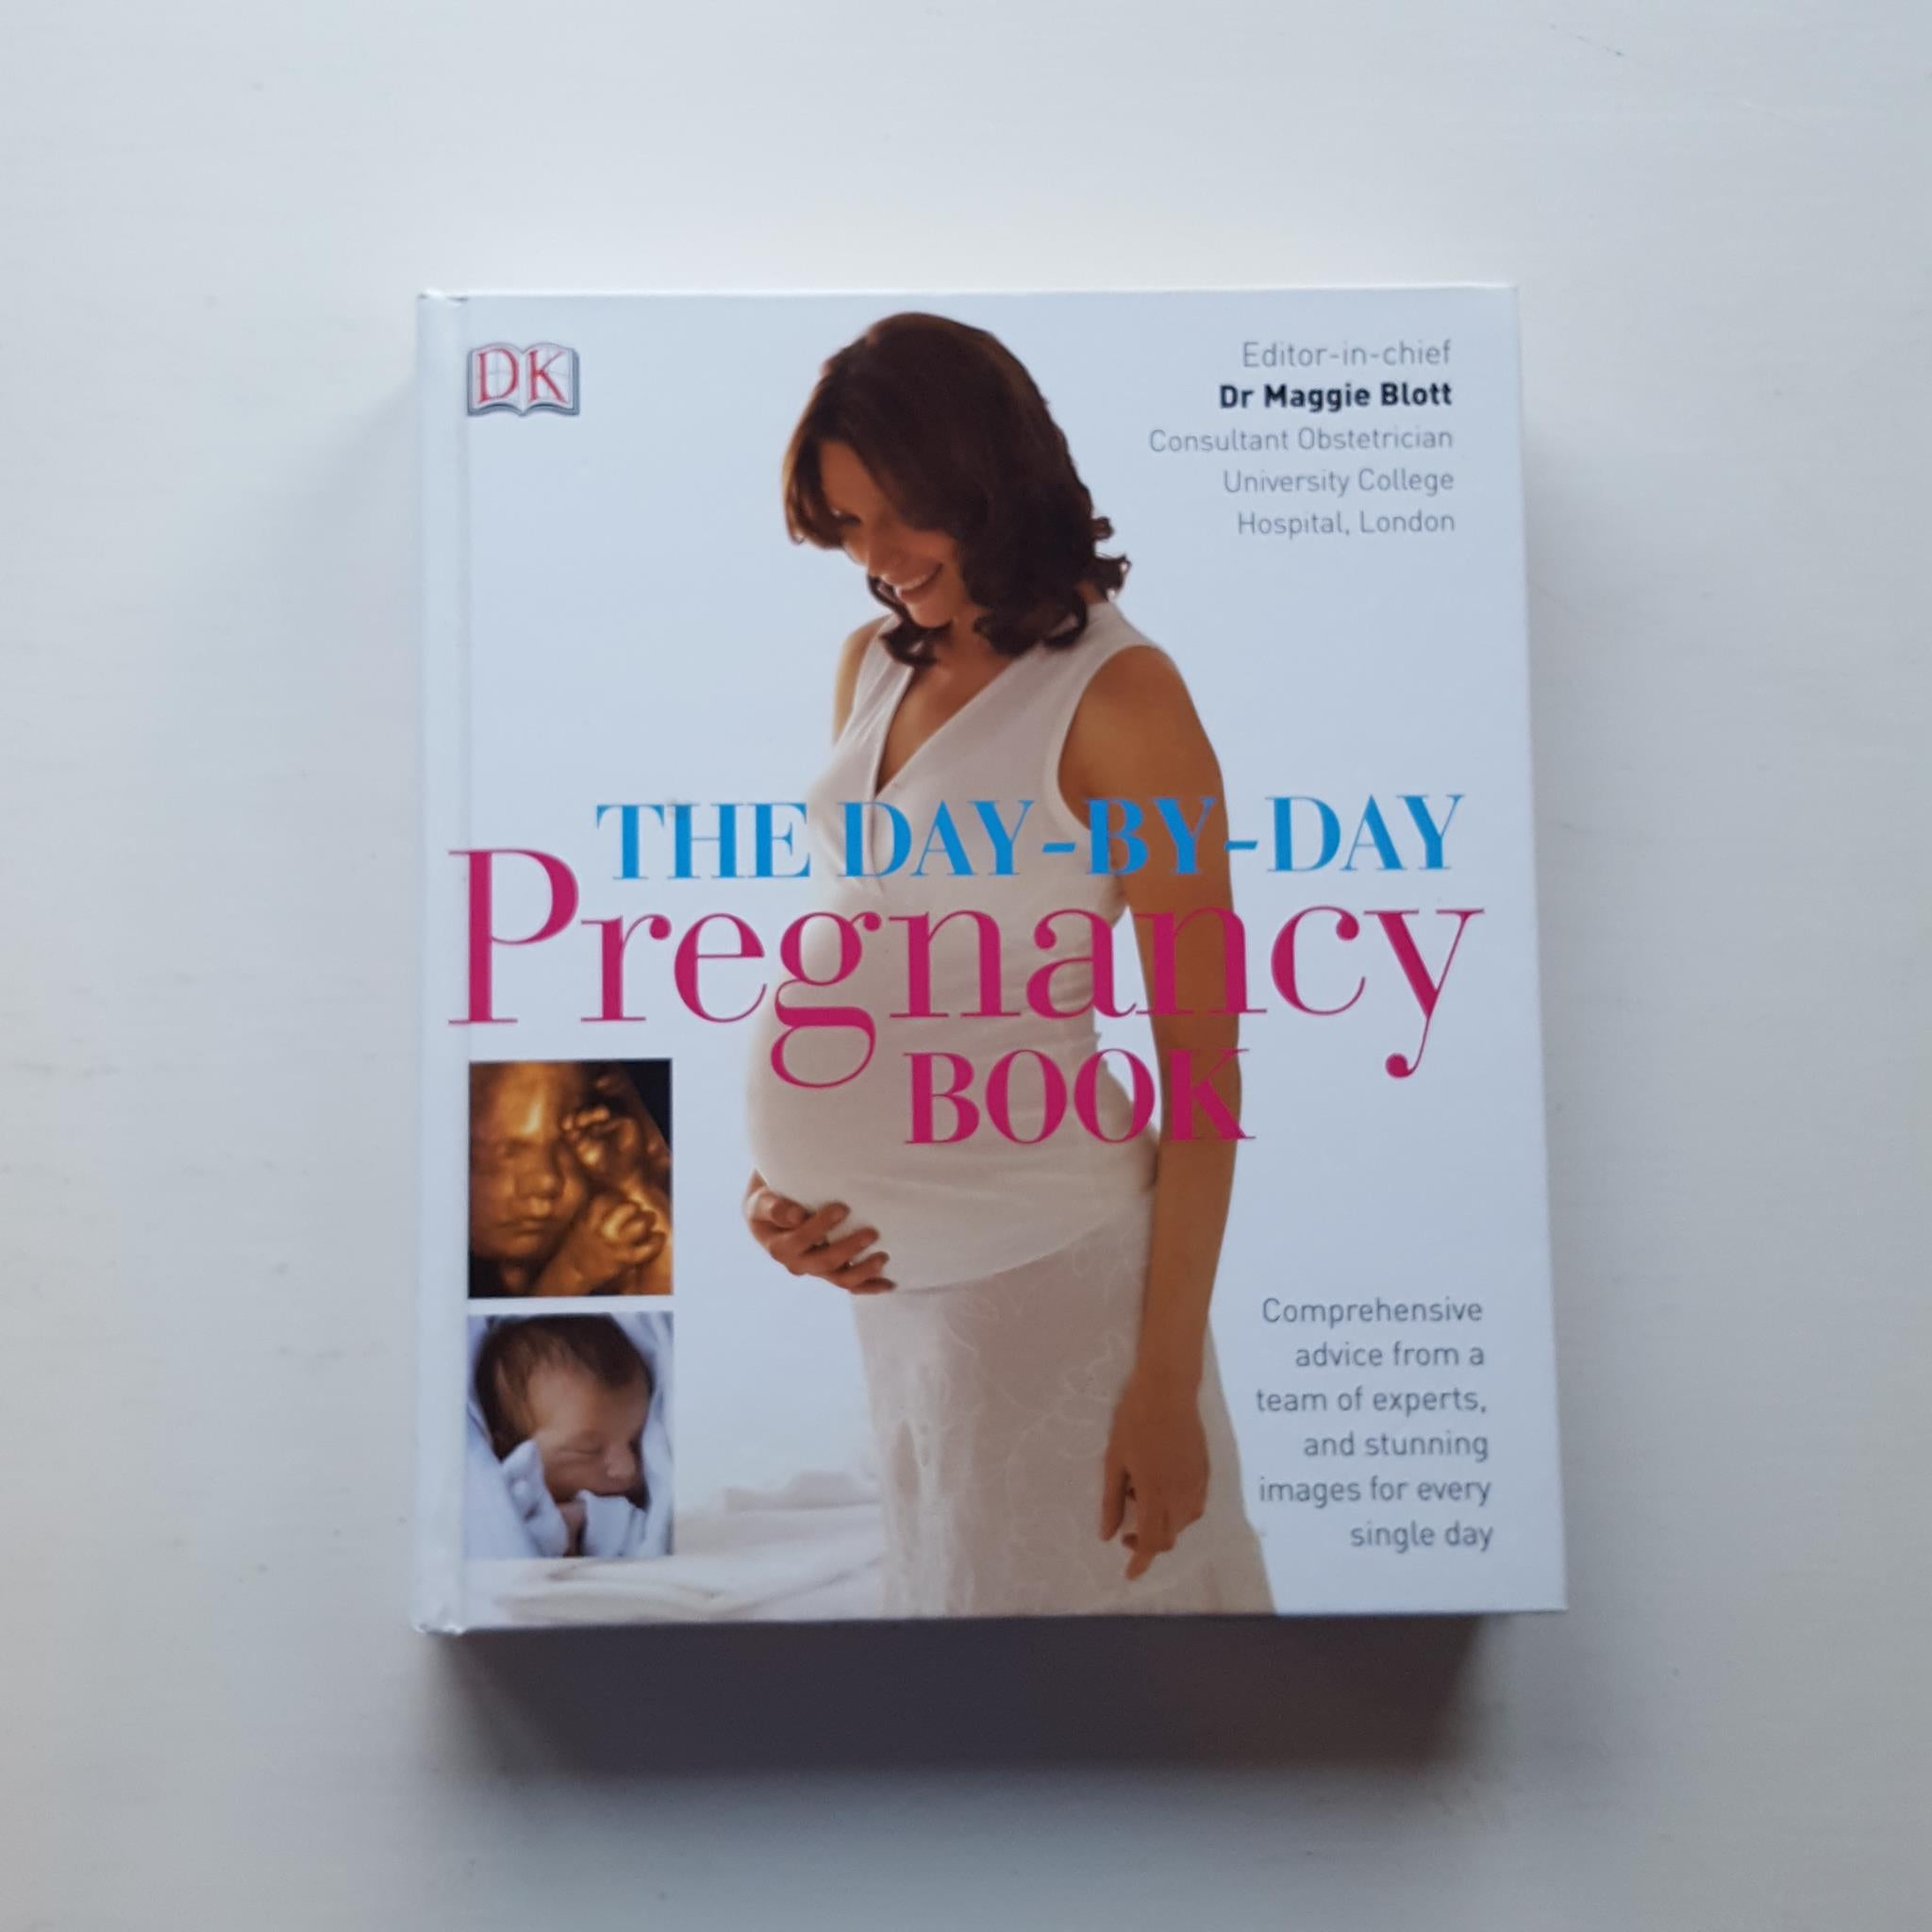 The Day-by-day Pregnancy Book by Dr Maggie Blott (ed)